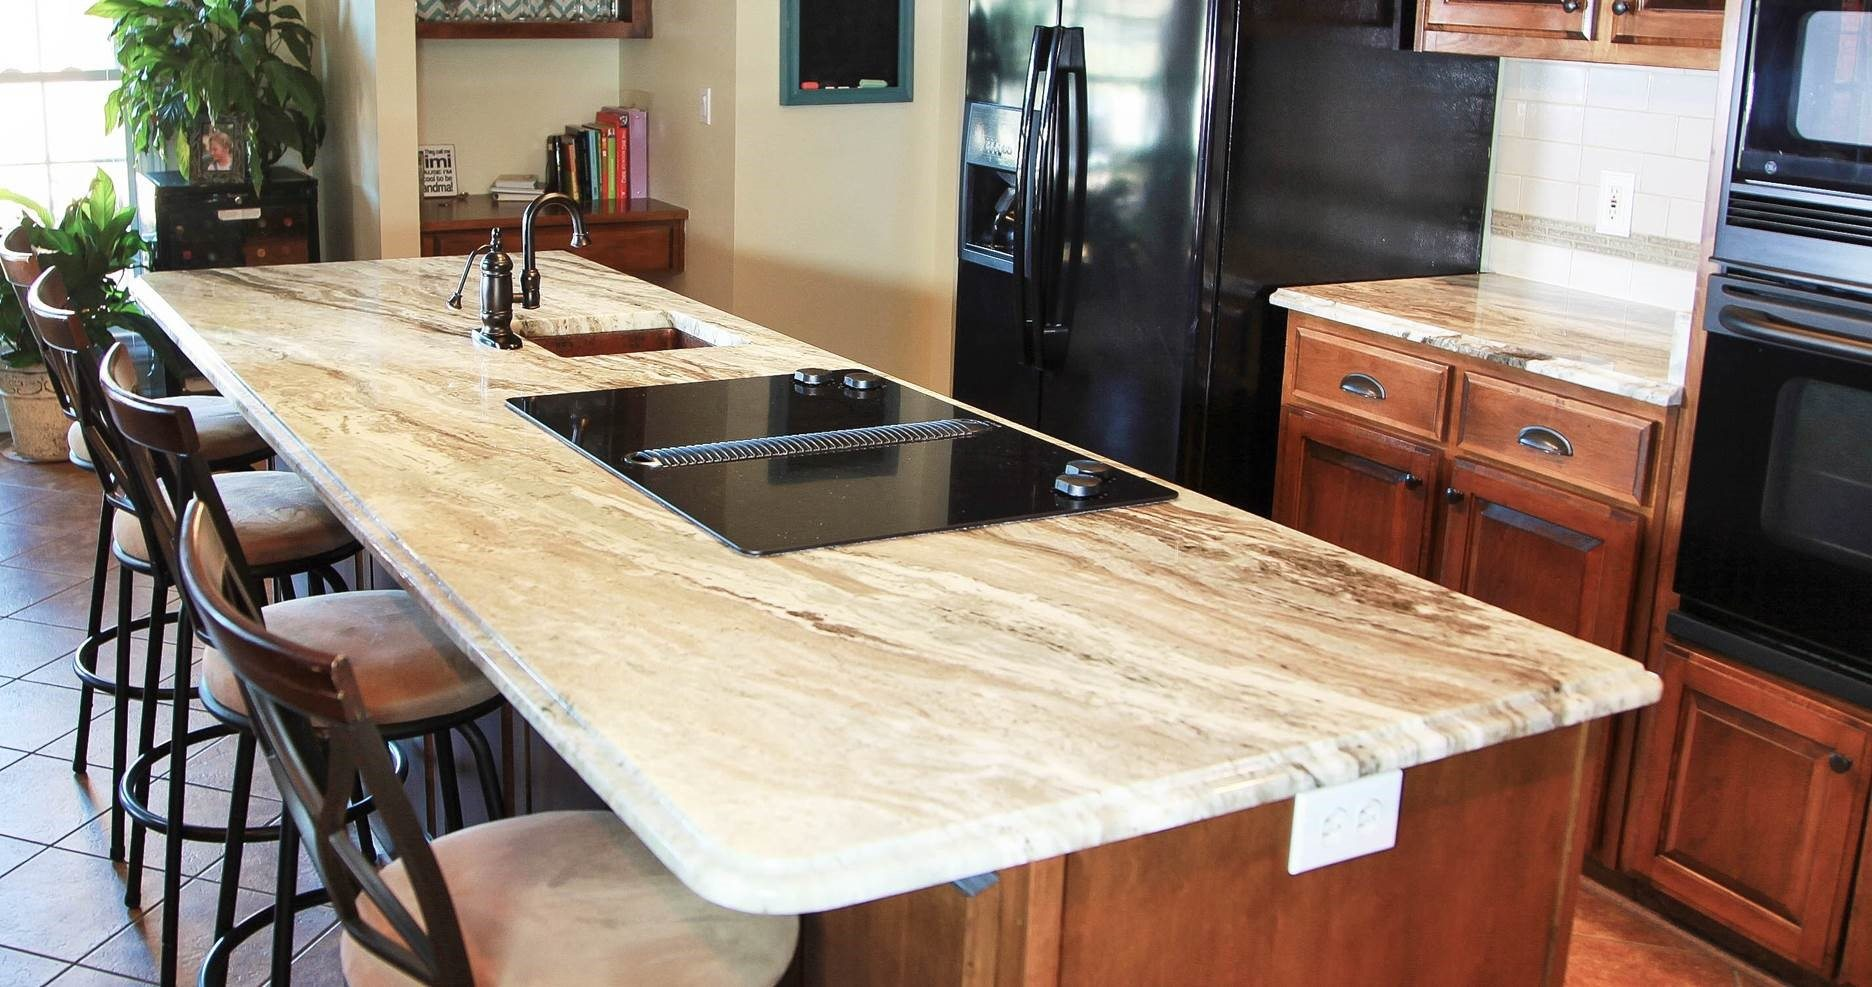 How Much Is A Quartz Countertop Are Silestone Countertops